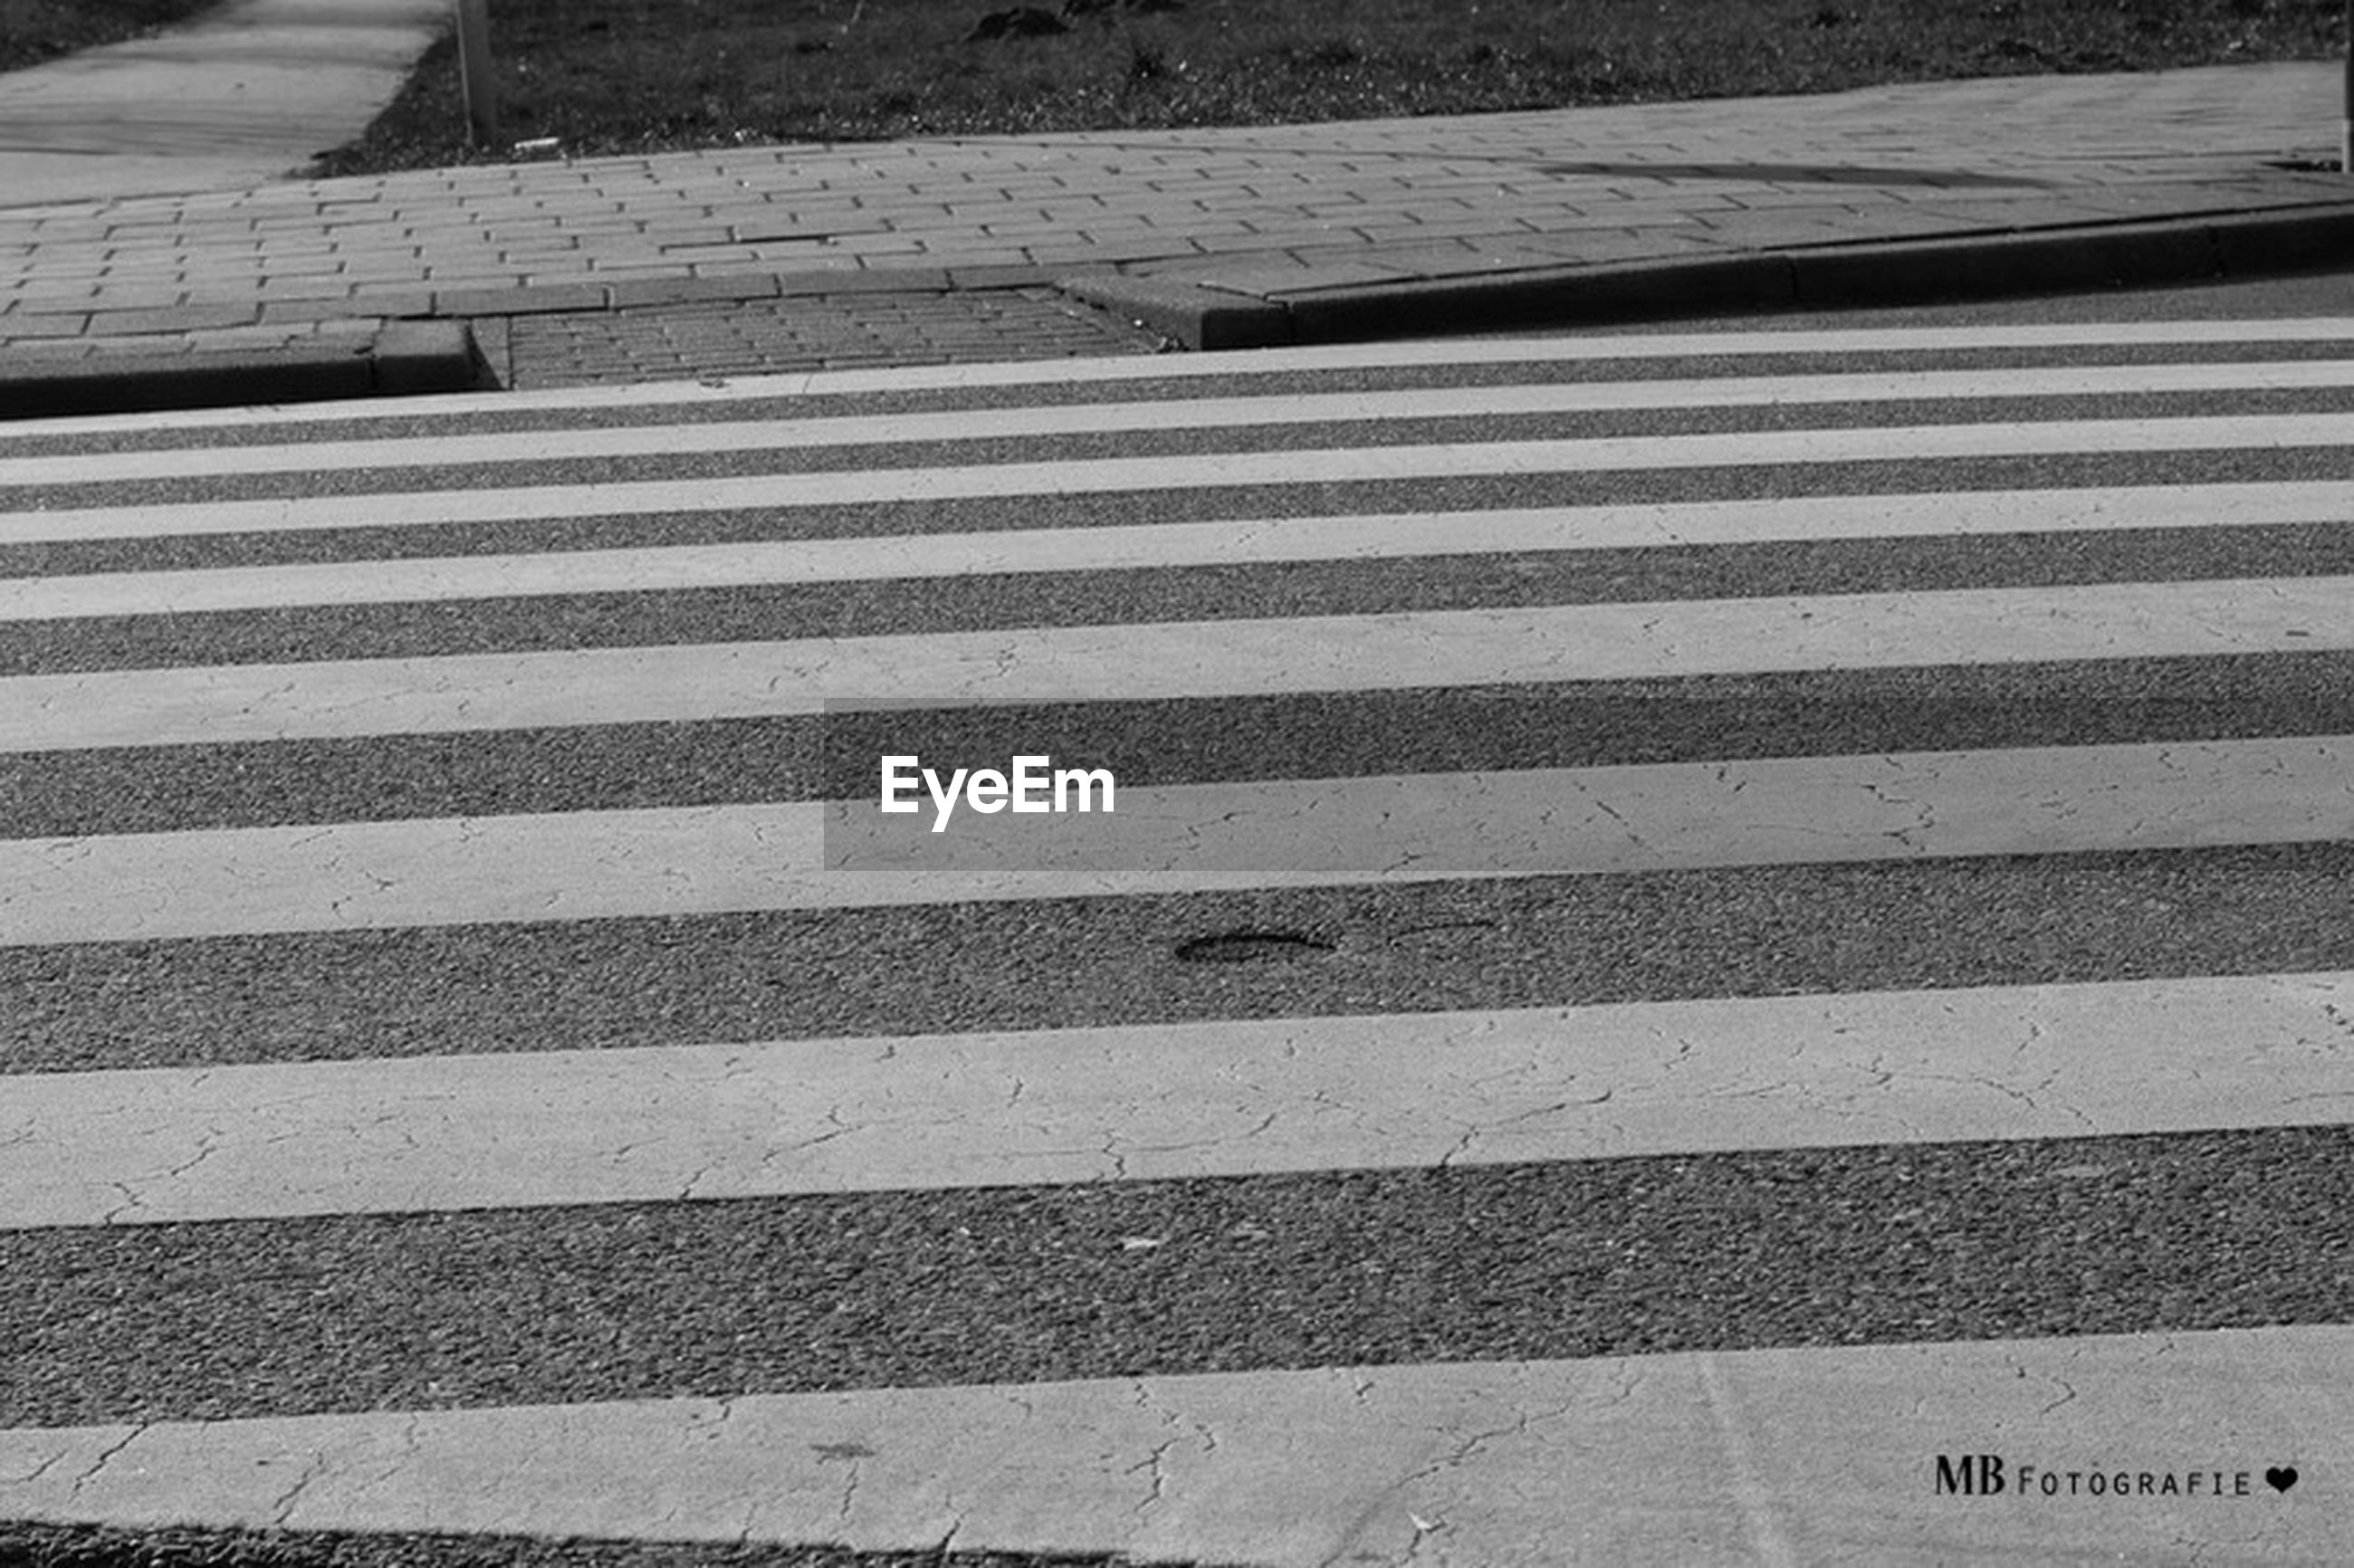 road marking, street, high angle view, asphalt, road, transportation, zebra crossing, guidance, day, outdoors, the way forward, white color, direction, arrow symbol, shadow, no people, striped, sunlight, city, directional sign